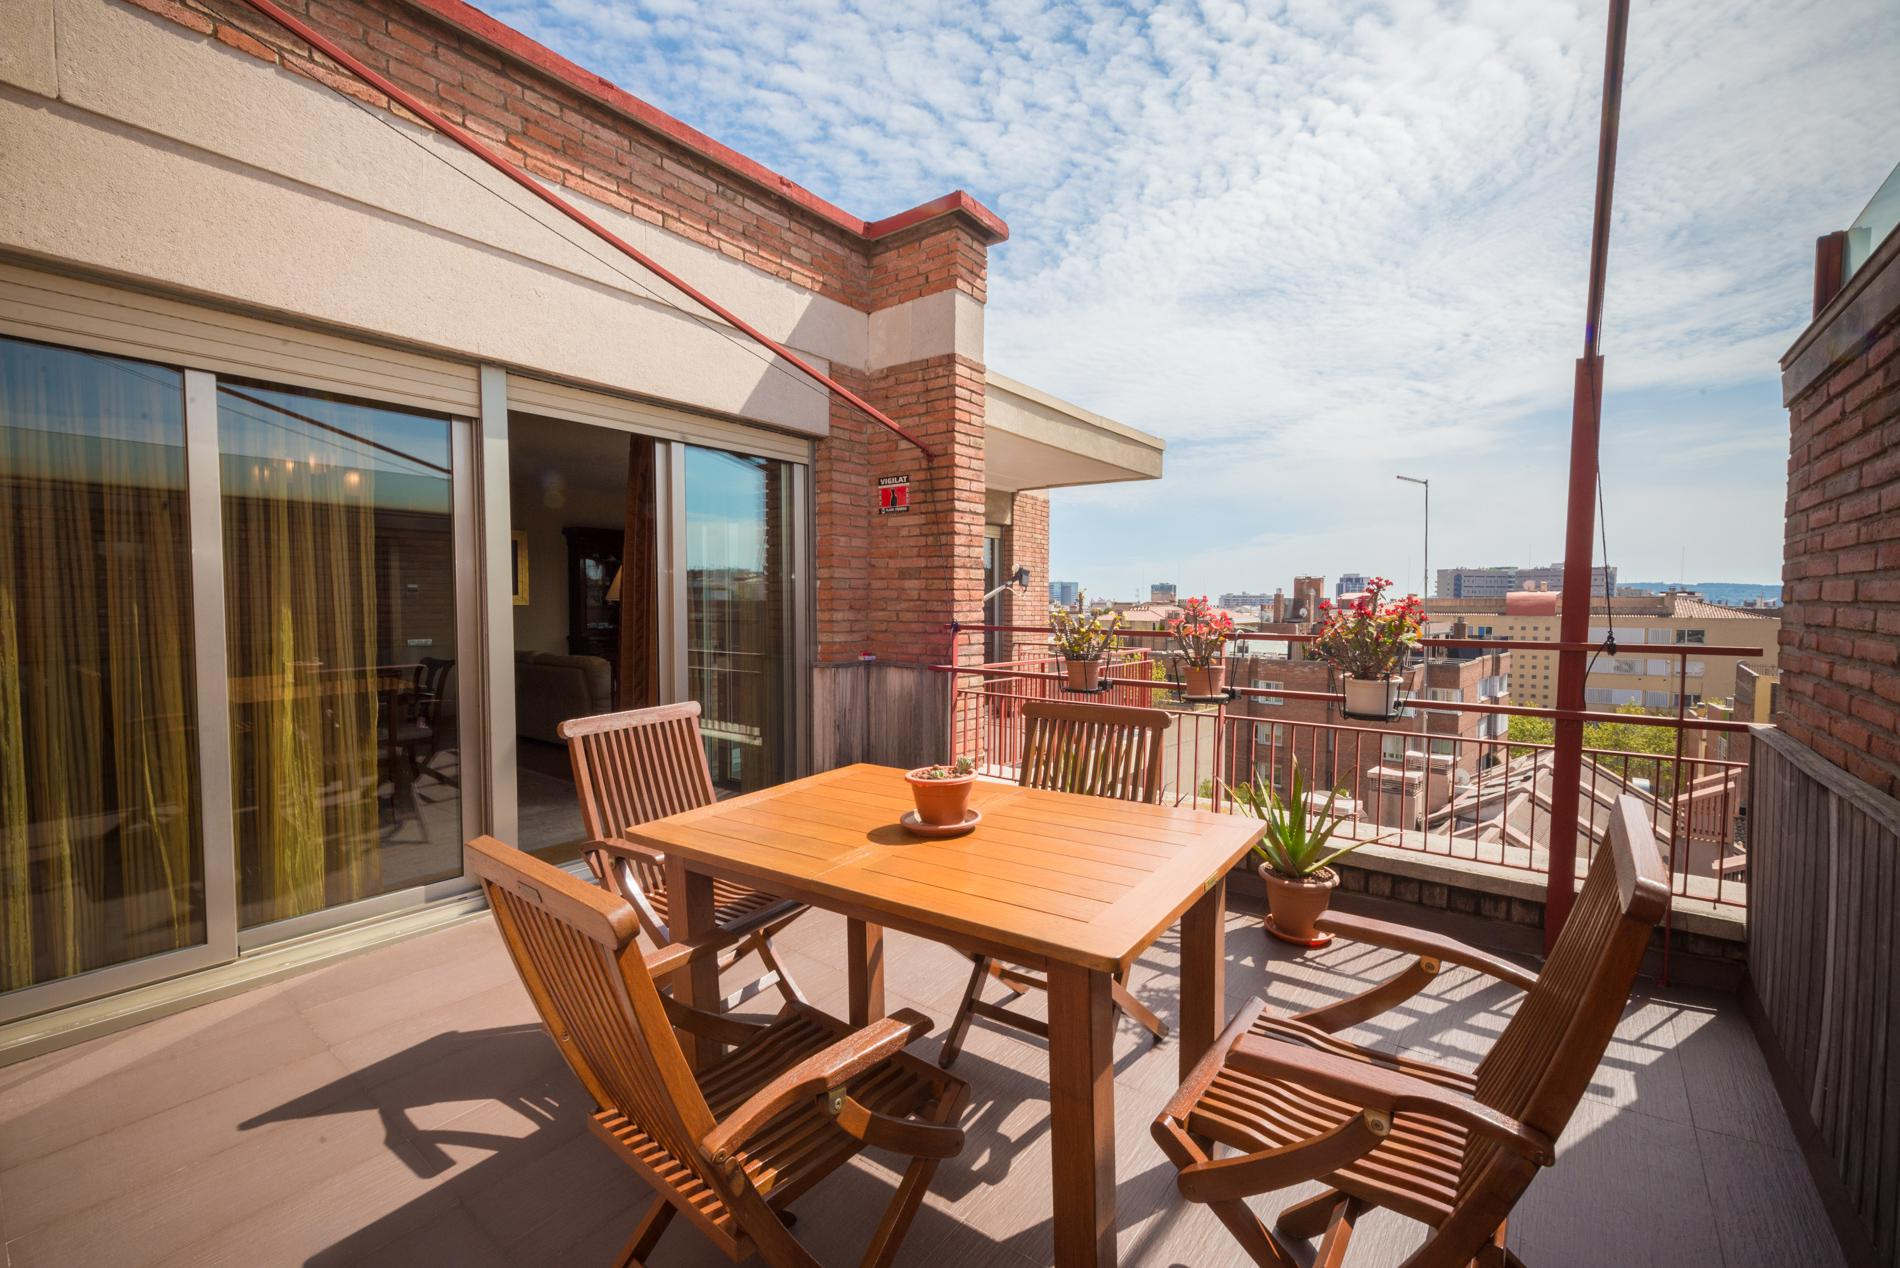 243582 Penthouse for sale in Sarrià-Sant Gervasi, Sant Gervasi-Galvany 1